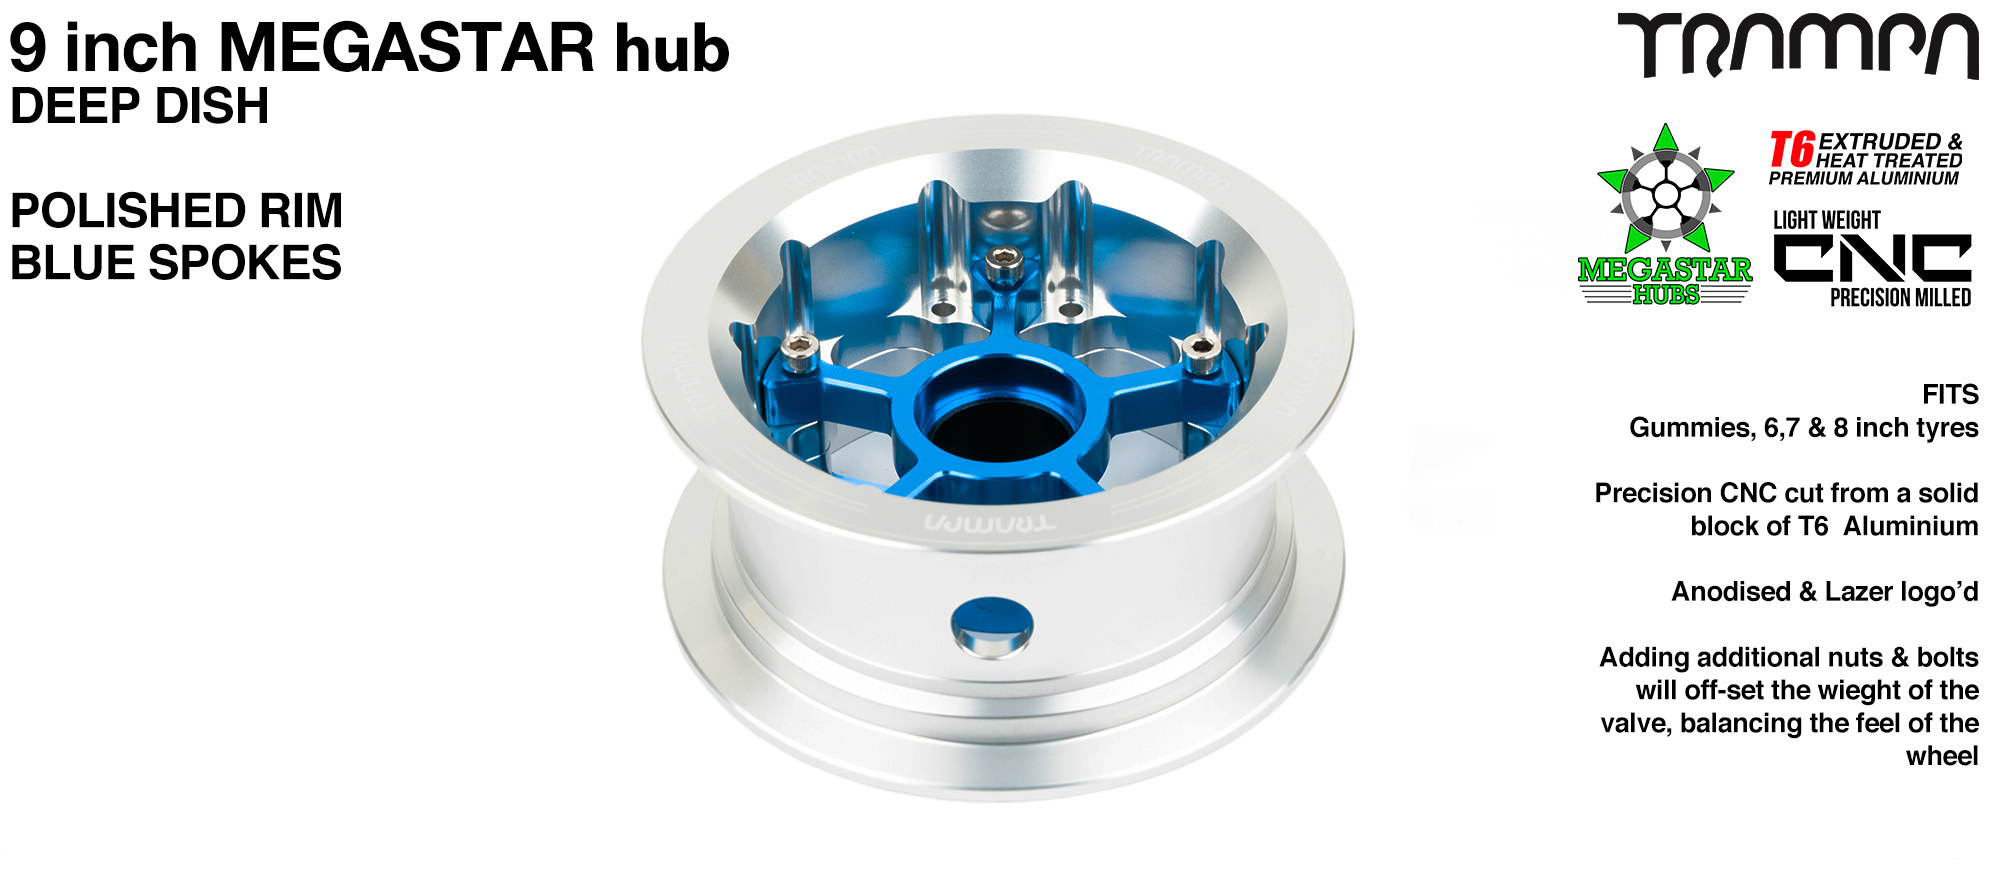 9 Inch MEGASTAR Hub - 2 Part Offset with Polished Rim with Blue Spokes fits with all of TRAMPA's different 9 Inch Tyres